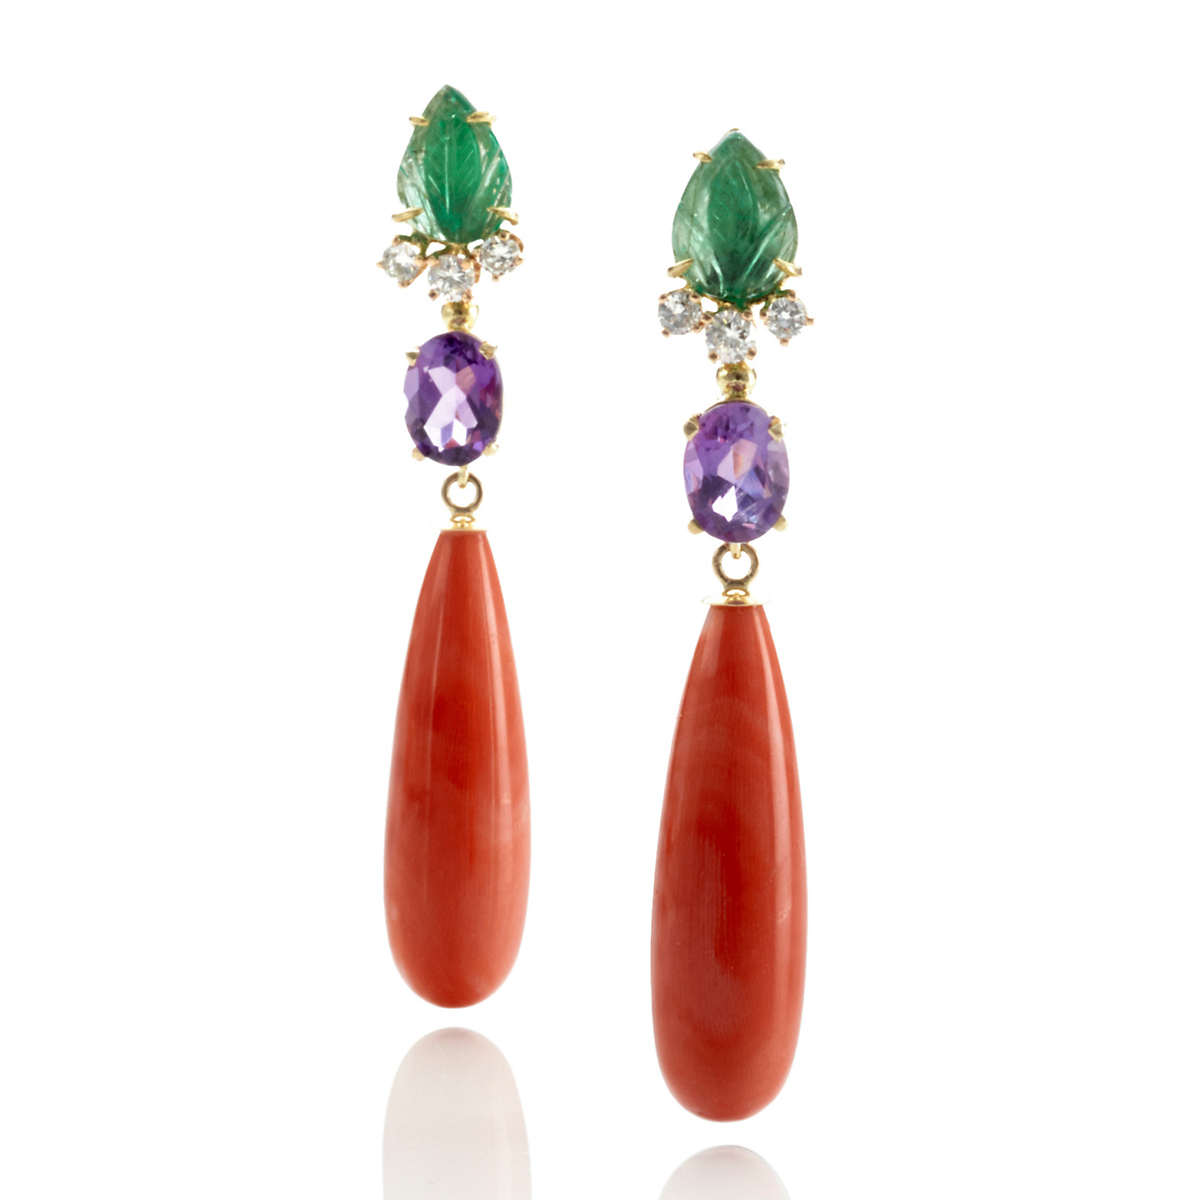 Russell Trusso Emerald & Amethyst Earrings With Coral Drops